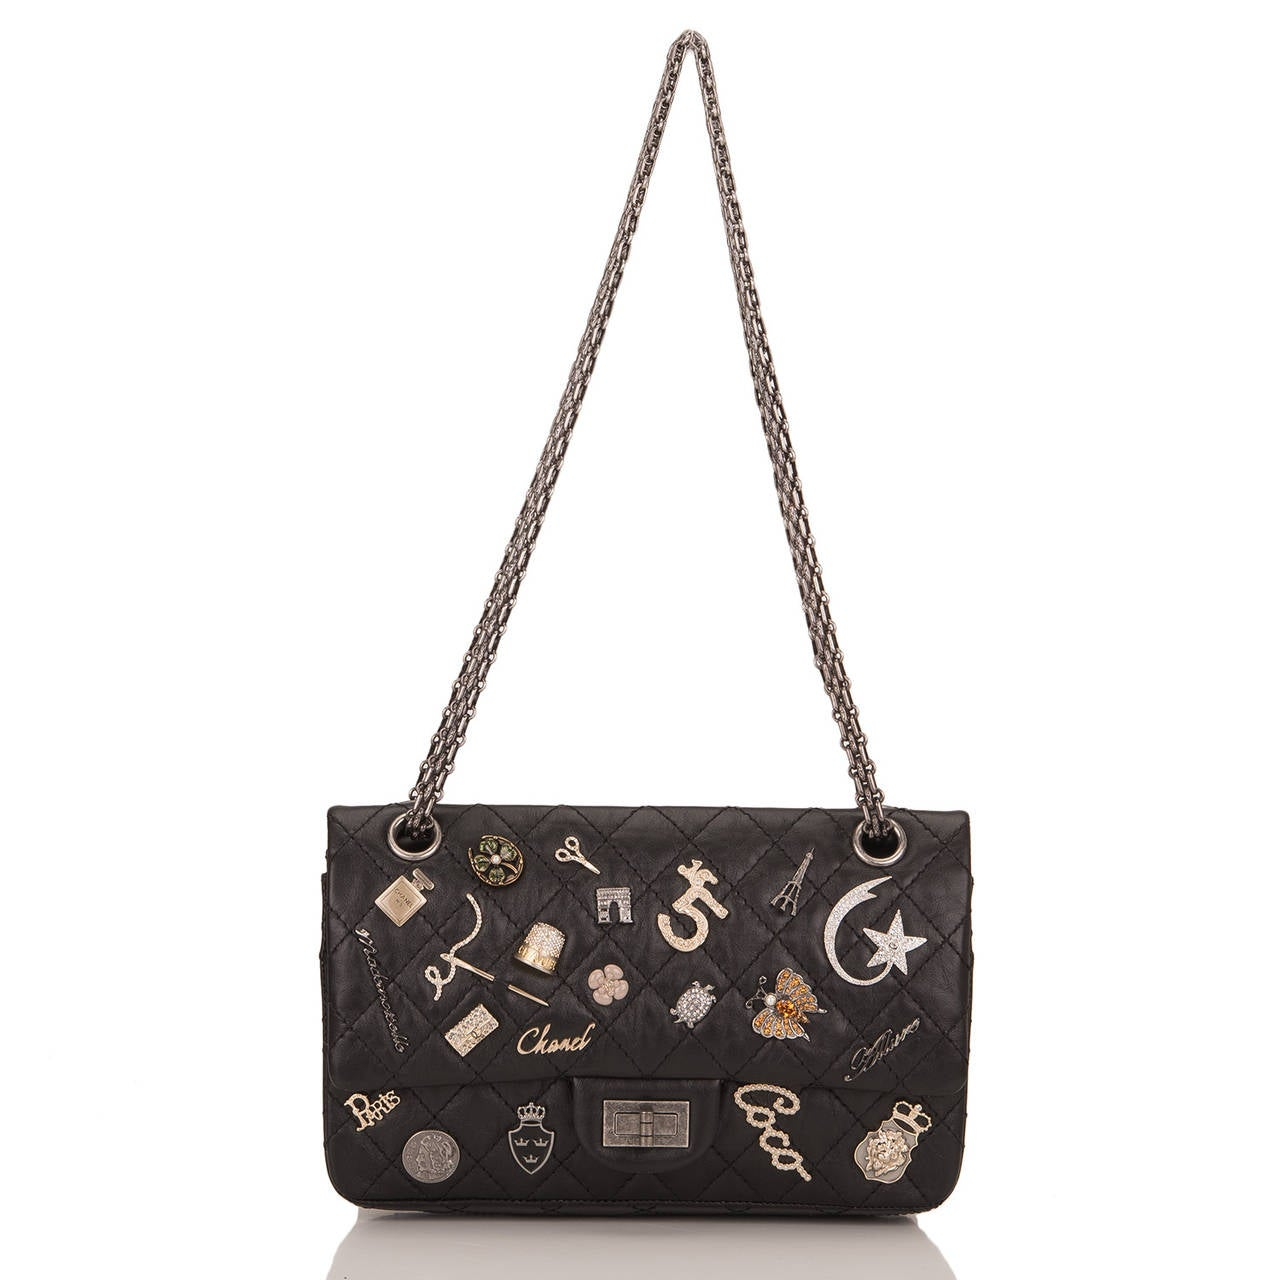 chanel black reissue 2 55 lucky charm bag at 1stdibs